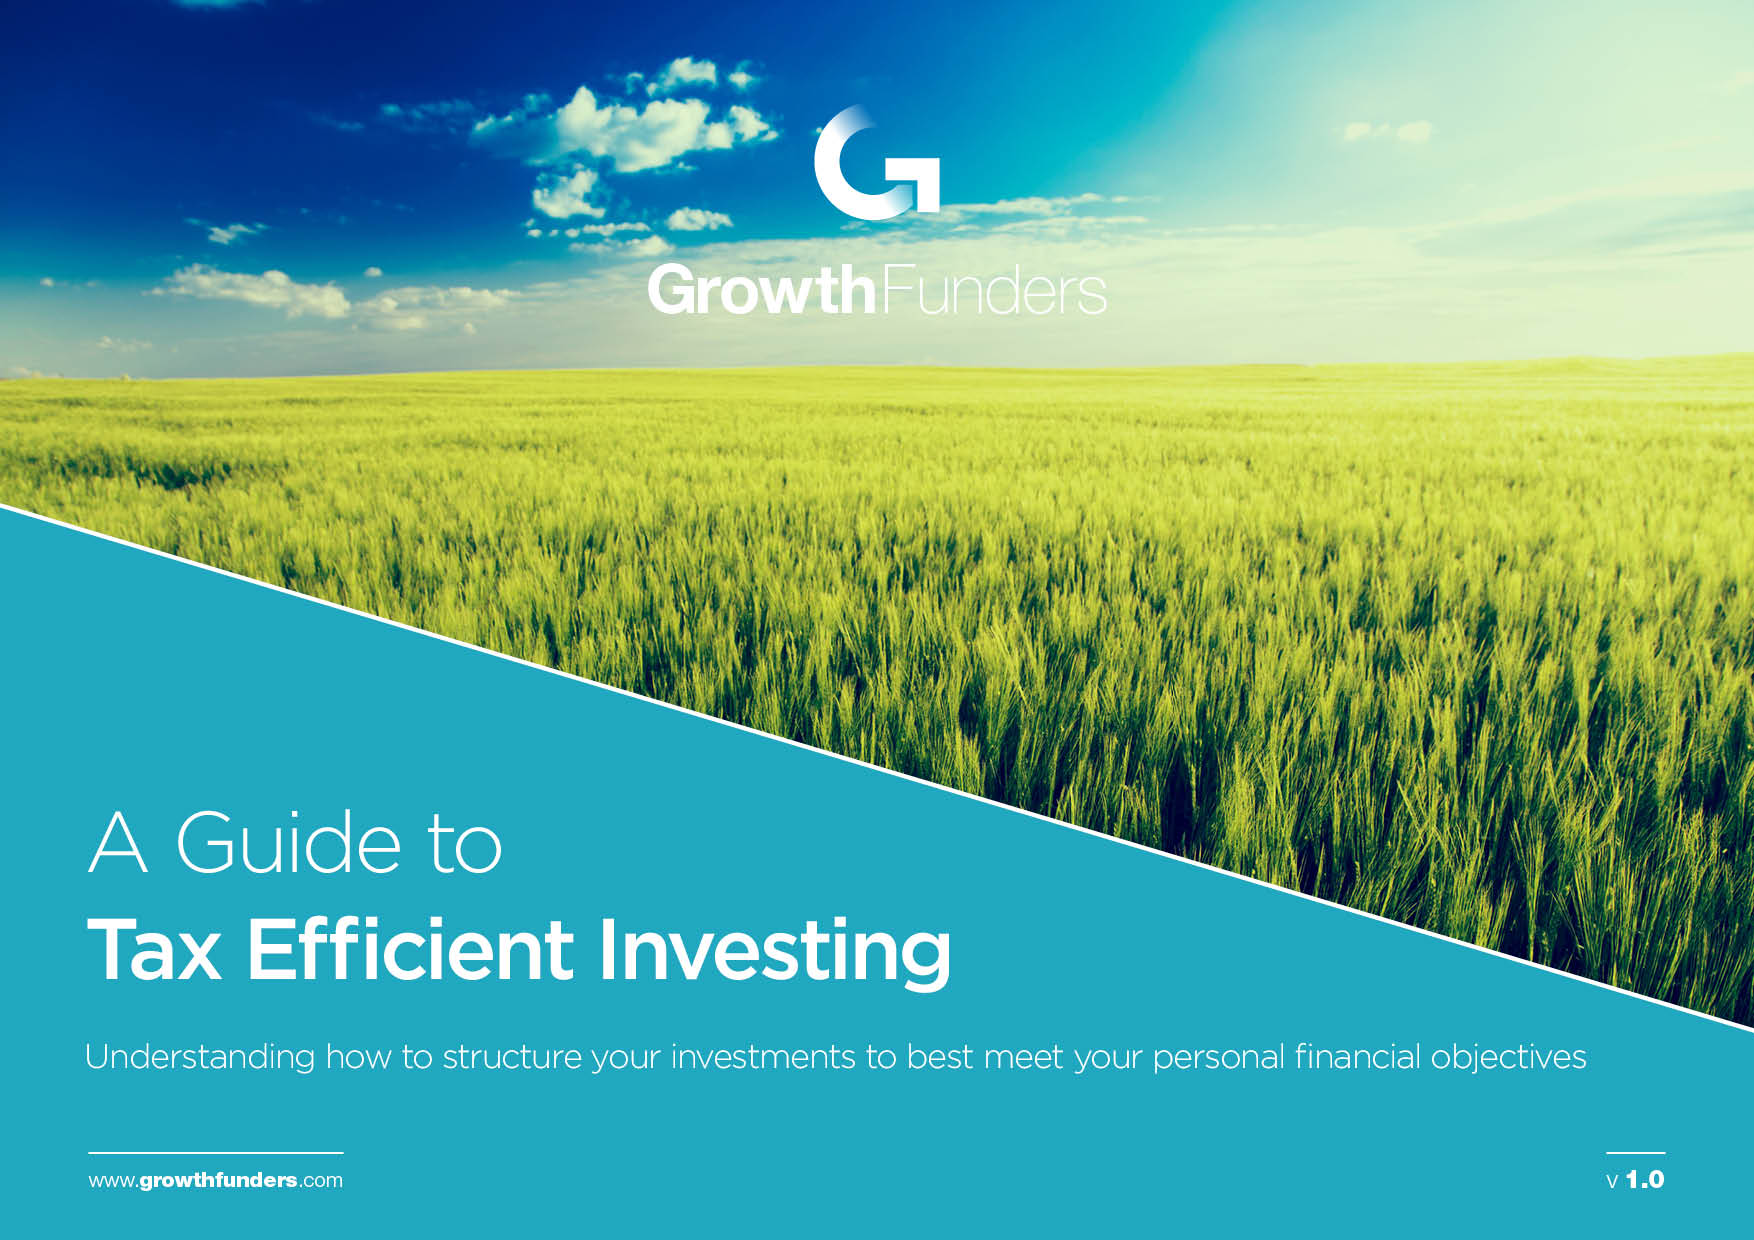 Tax Efficient Investing Guide Cover.jpg